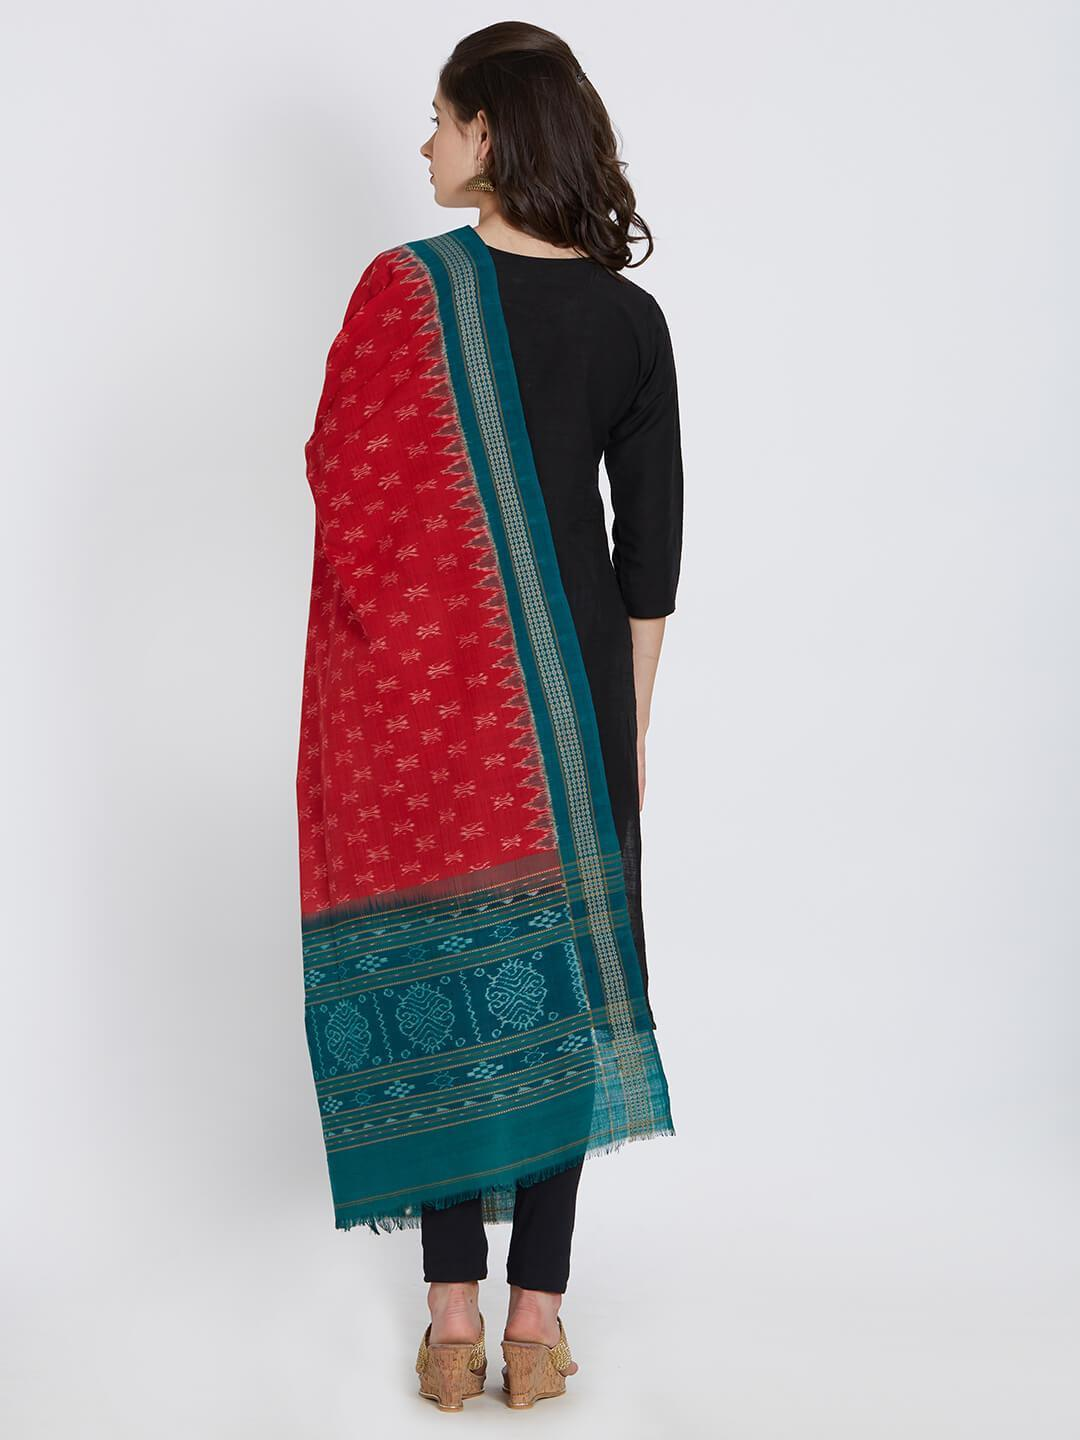 CraftsCollection.in - Red and Green Sambalpuri  Cotton Dupatta